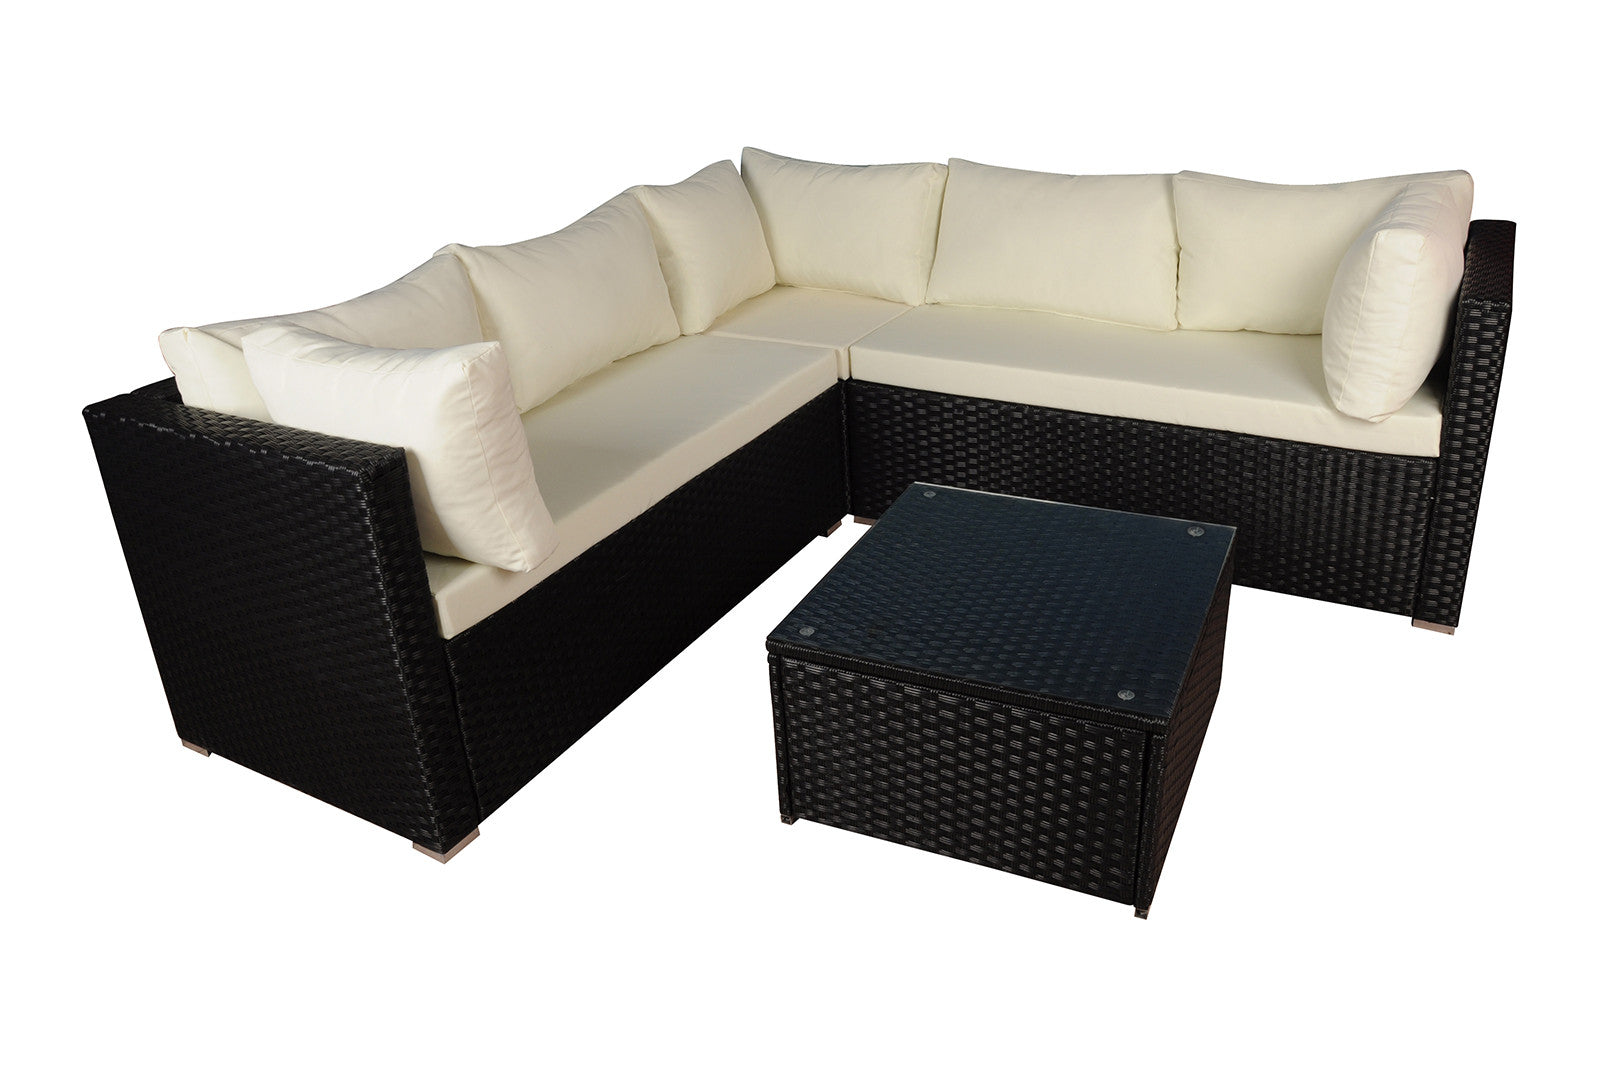 Outdoor Rattan Summer Sun Sectional Coffee Table Set Image